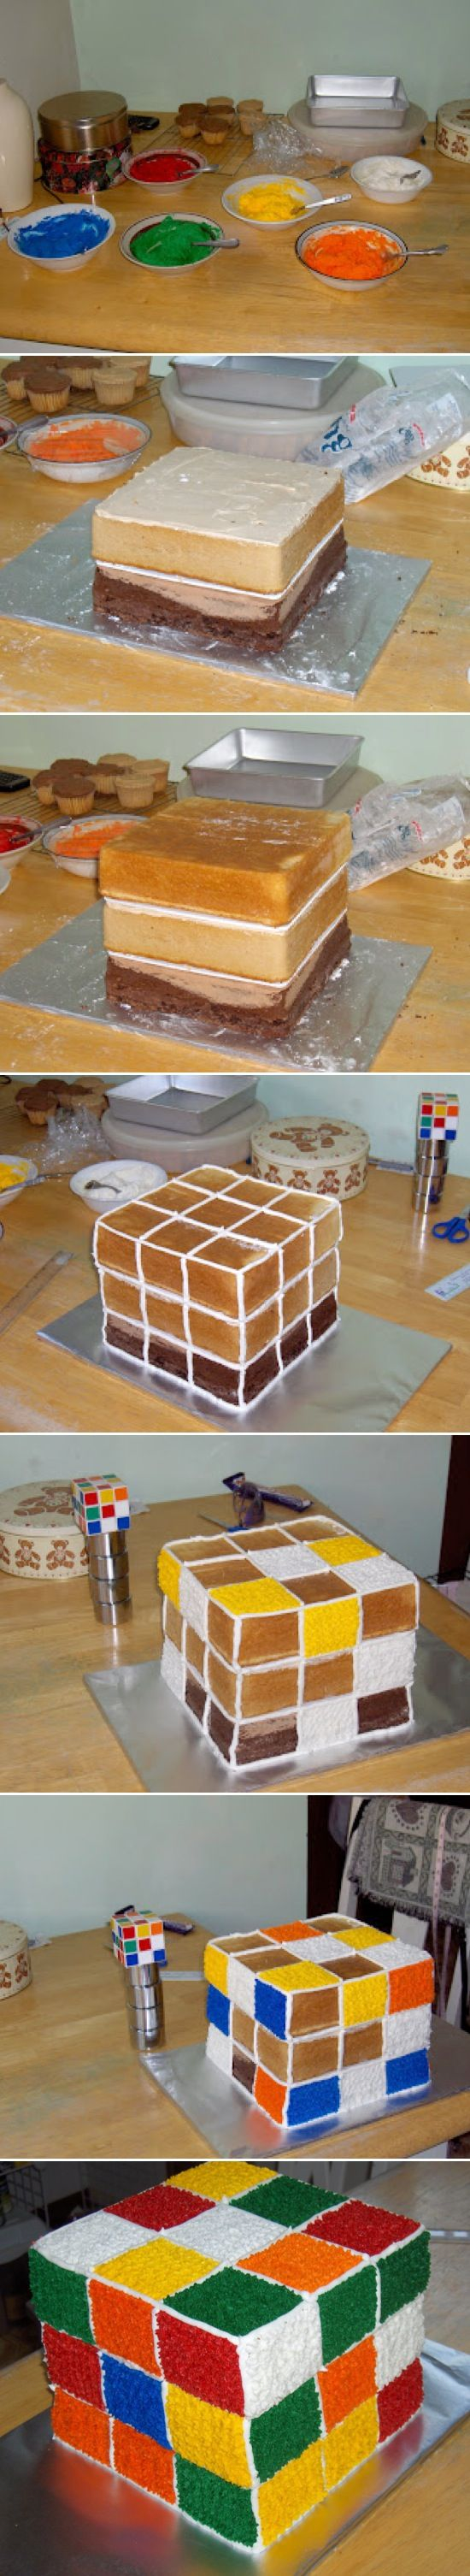 Rubik cube cake!  ...actually click on it so that you can understand the awesomeness